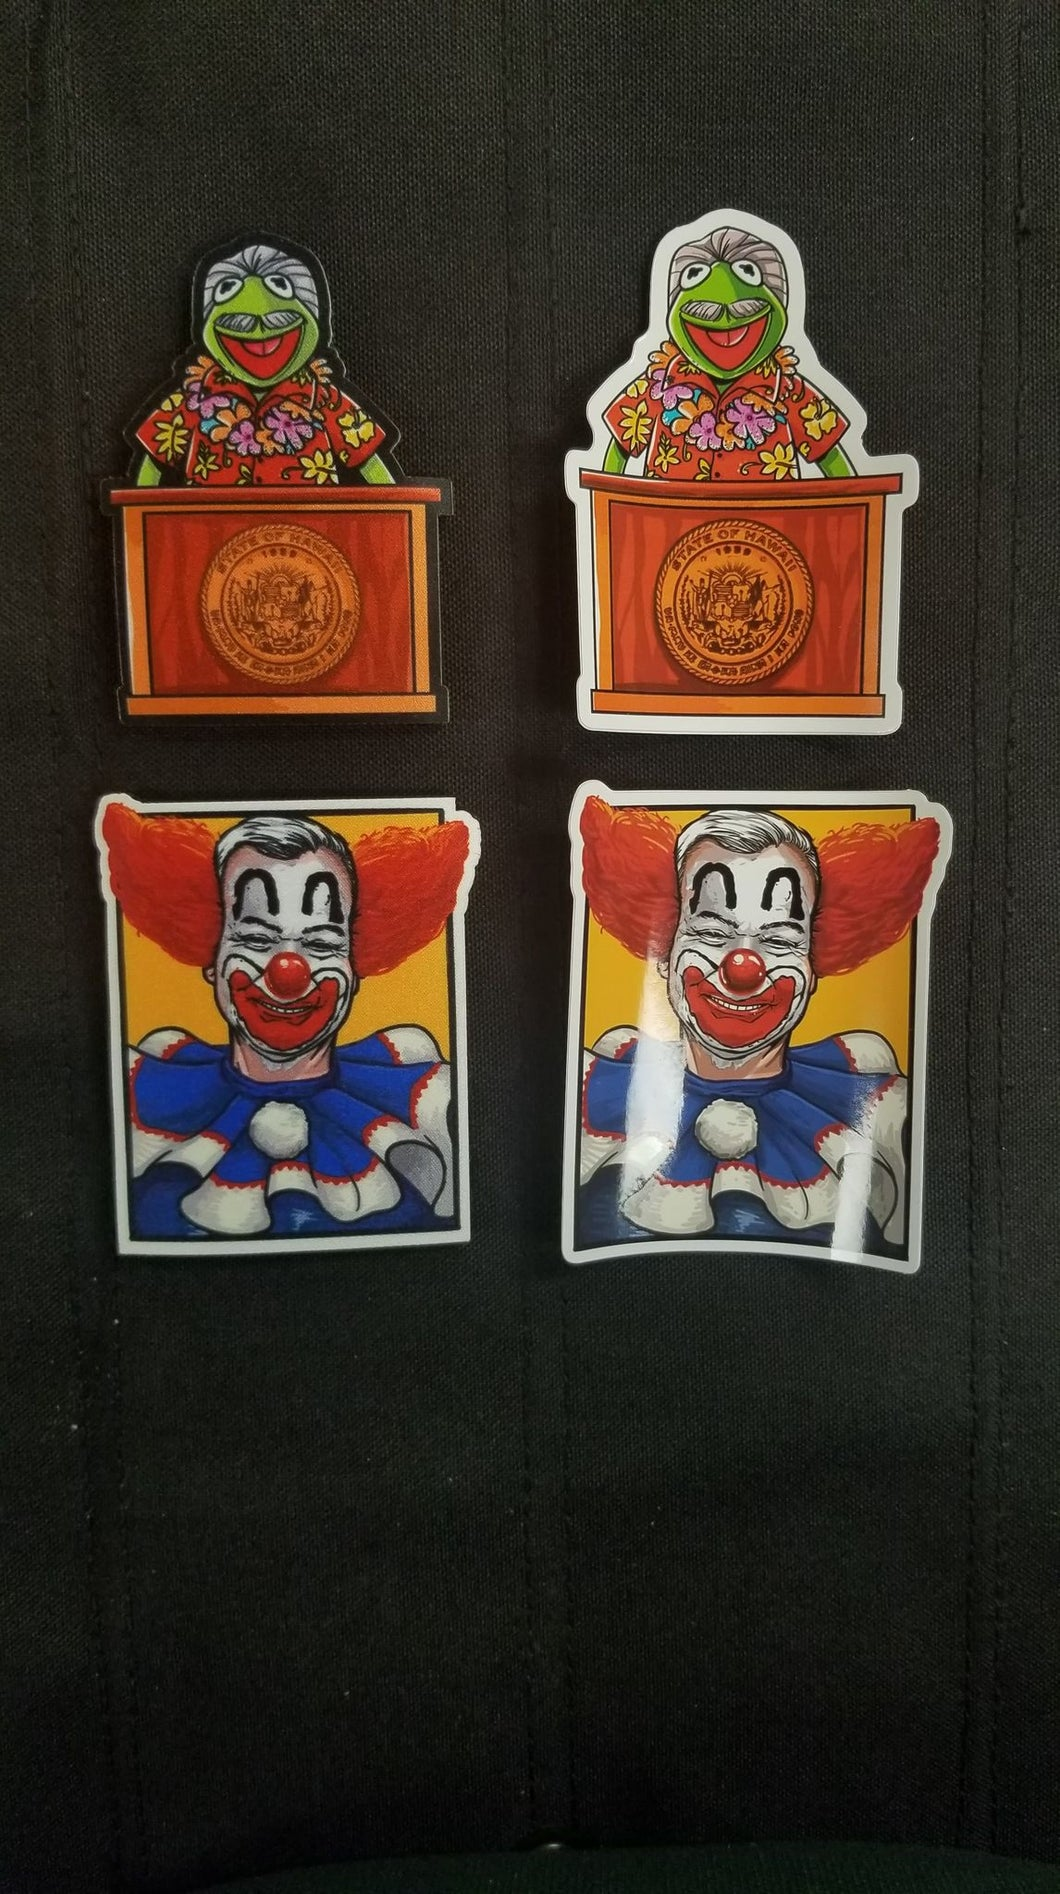 Clownwell and Da Gov Patch and Sticker Combo